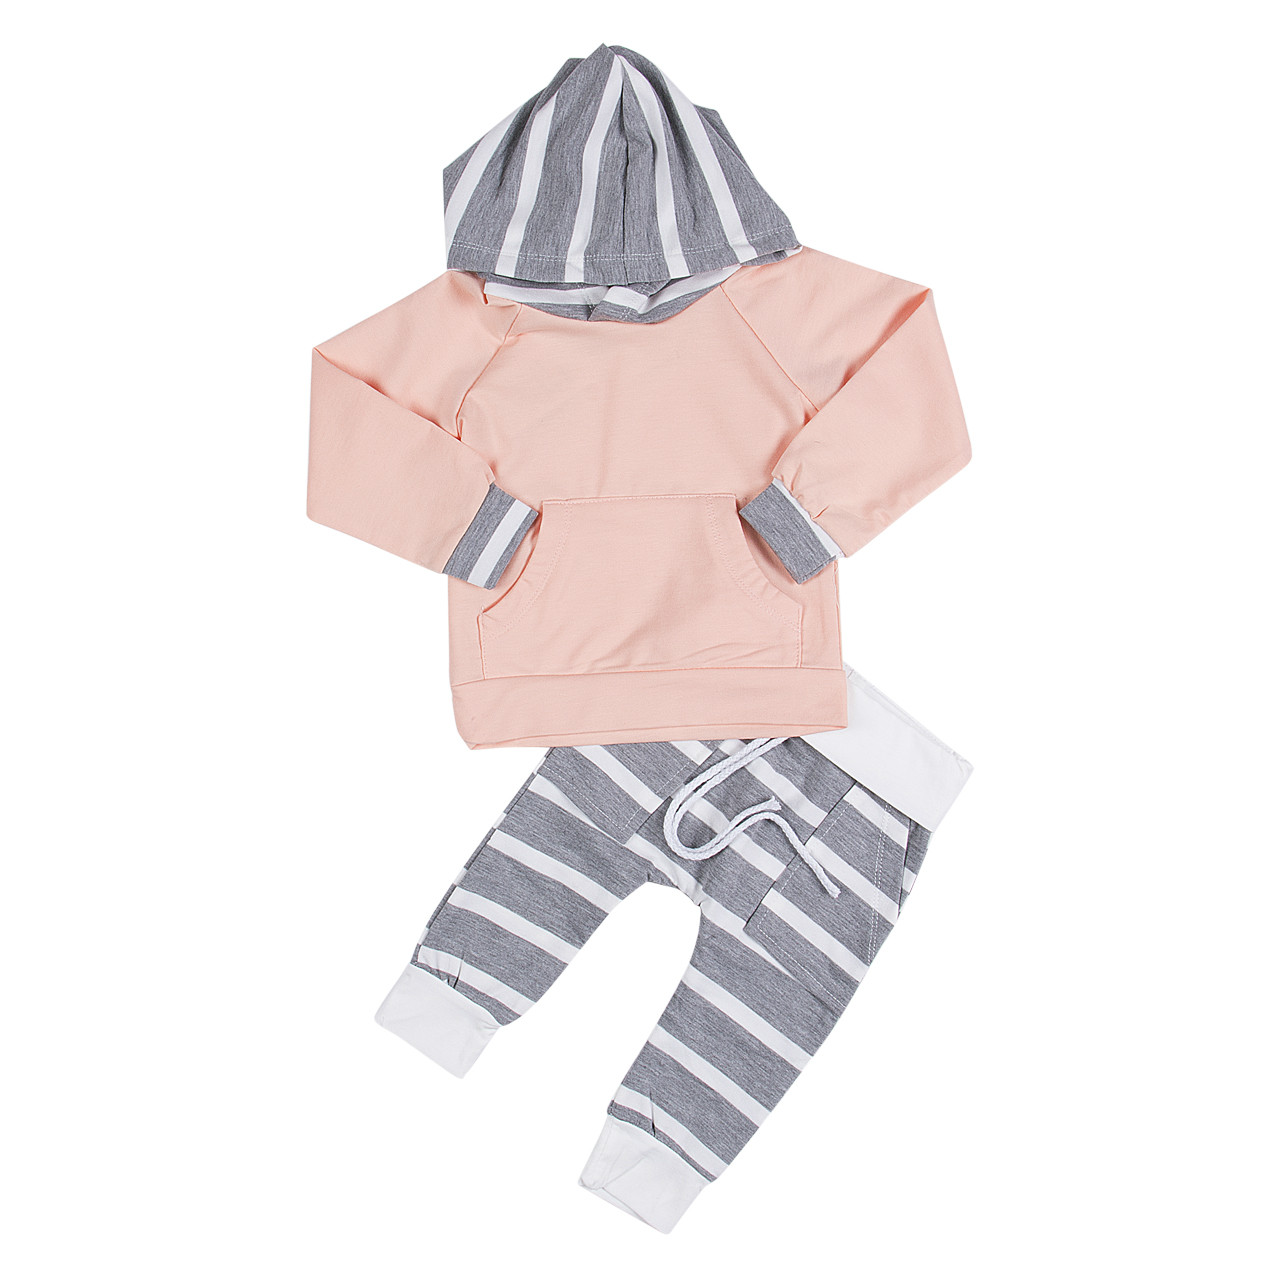 2017 Hot Sale Cute Kids Baby Girls Boy clothes Set Fashion Spring Autumn Hooded Tops Sweatshirt+Striped Pants 2pcs Outfits